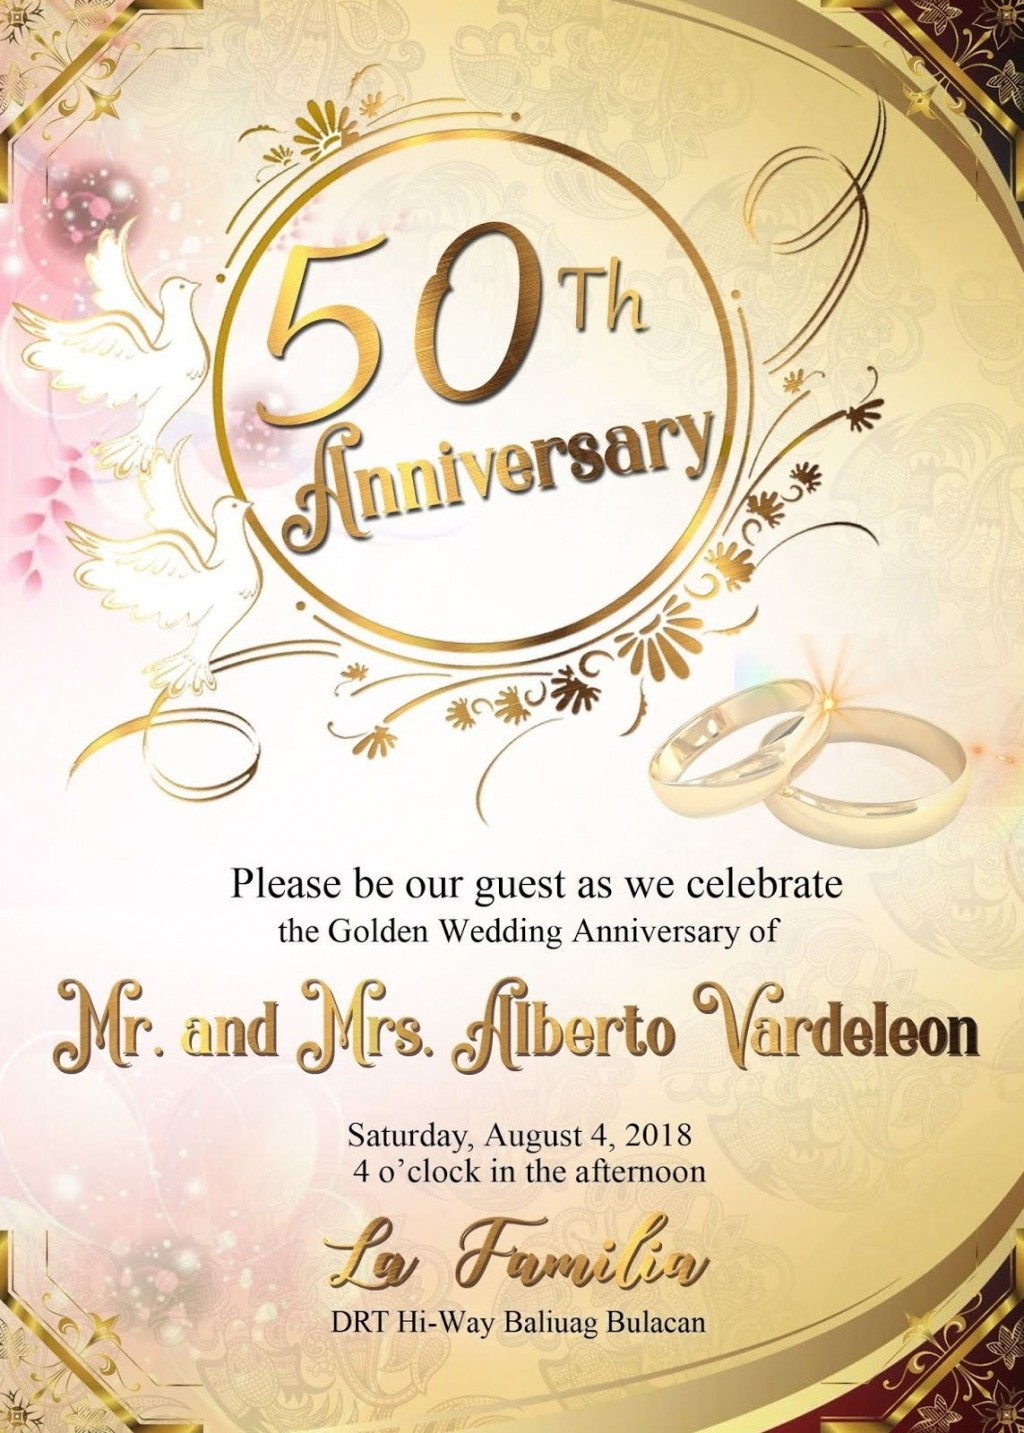 010 Stunning 50th Anniversary Party Invitation Template Example  Templates Golden Wedding Uk Microsoft Word FreeLarge